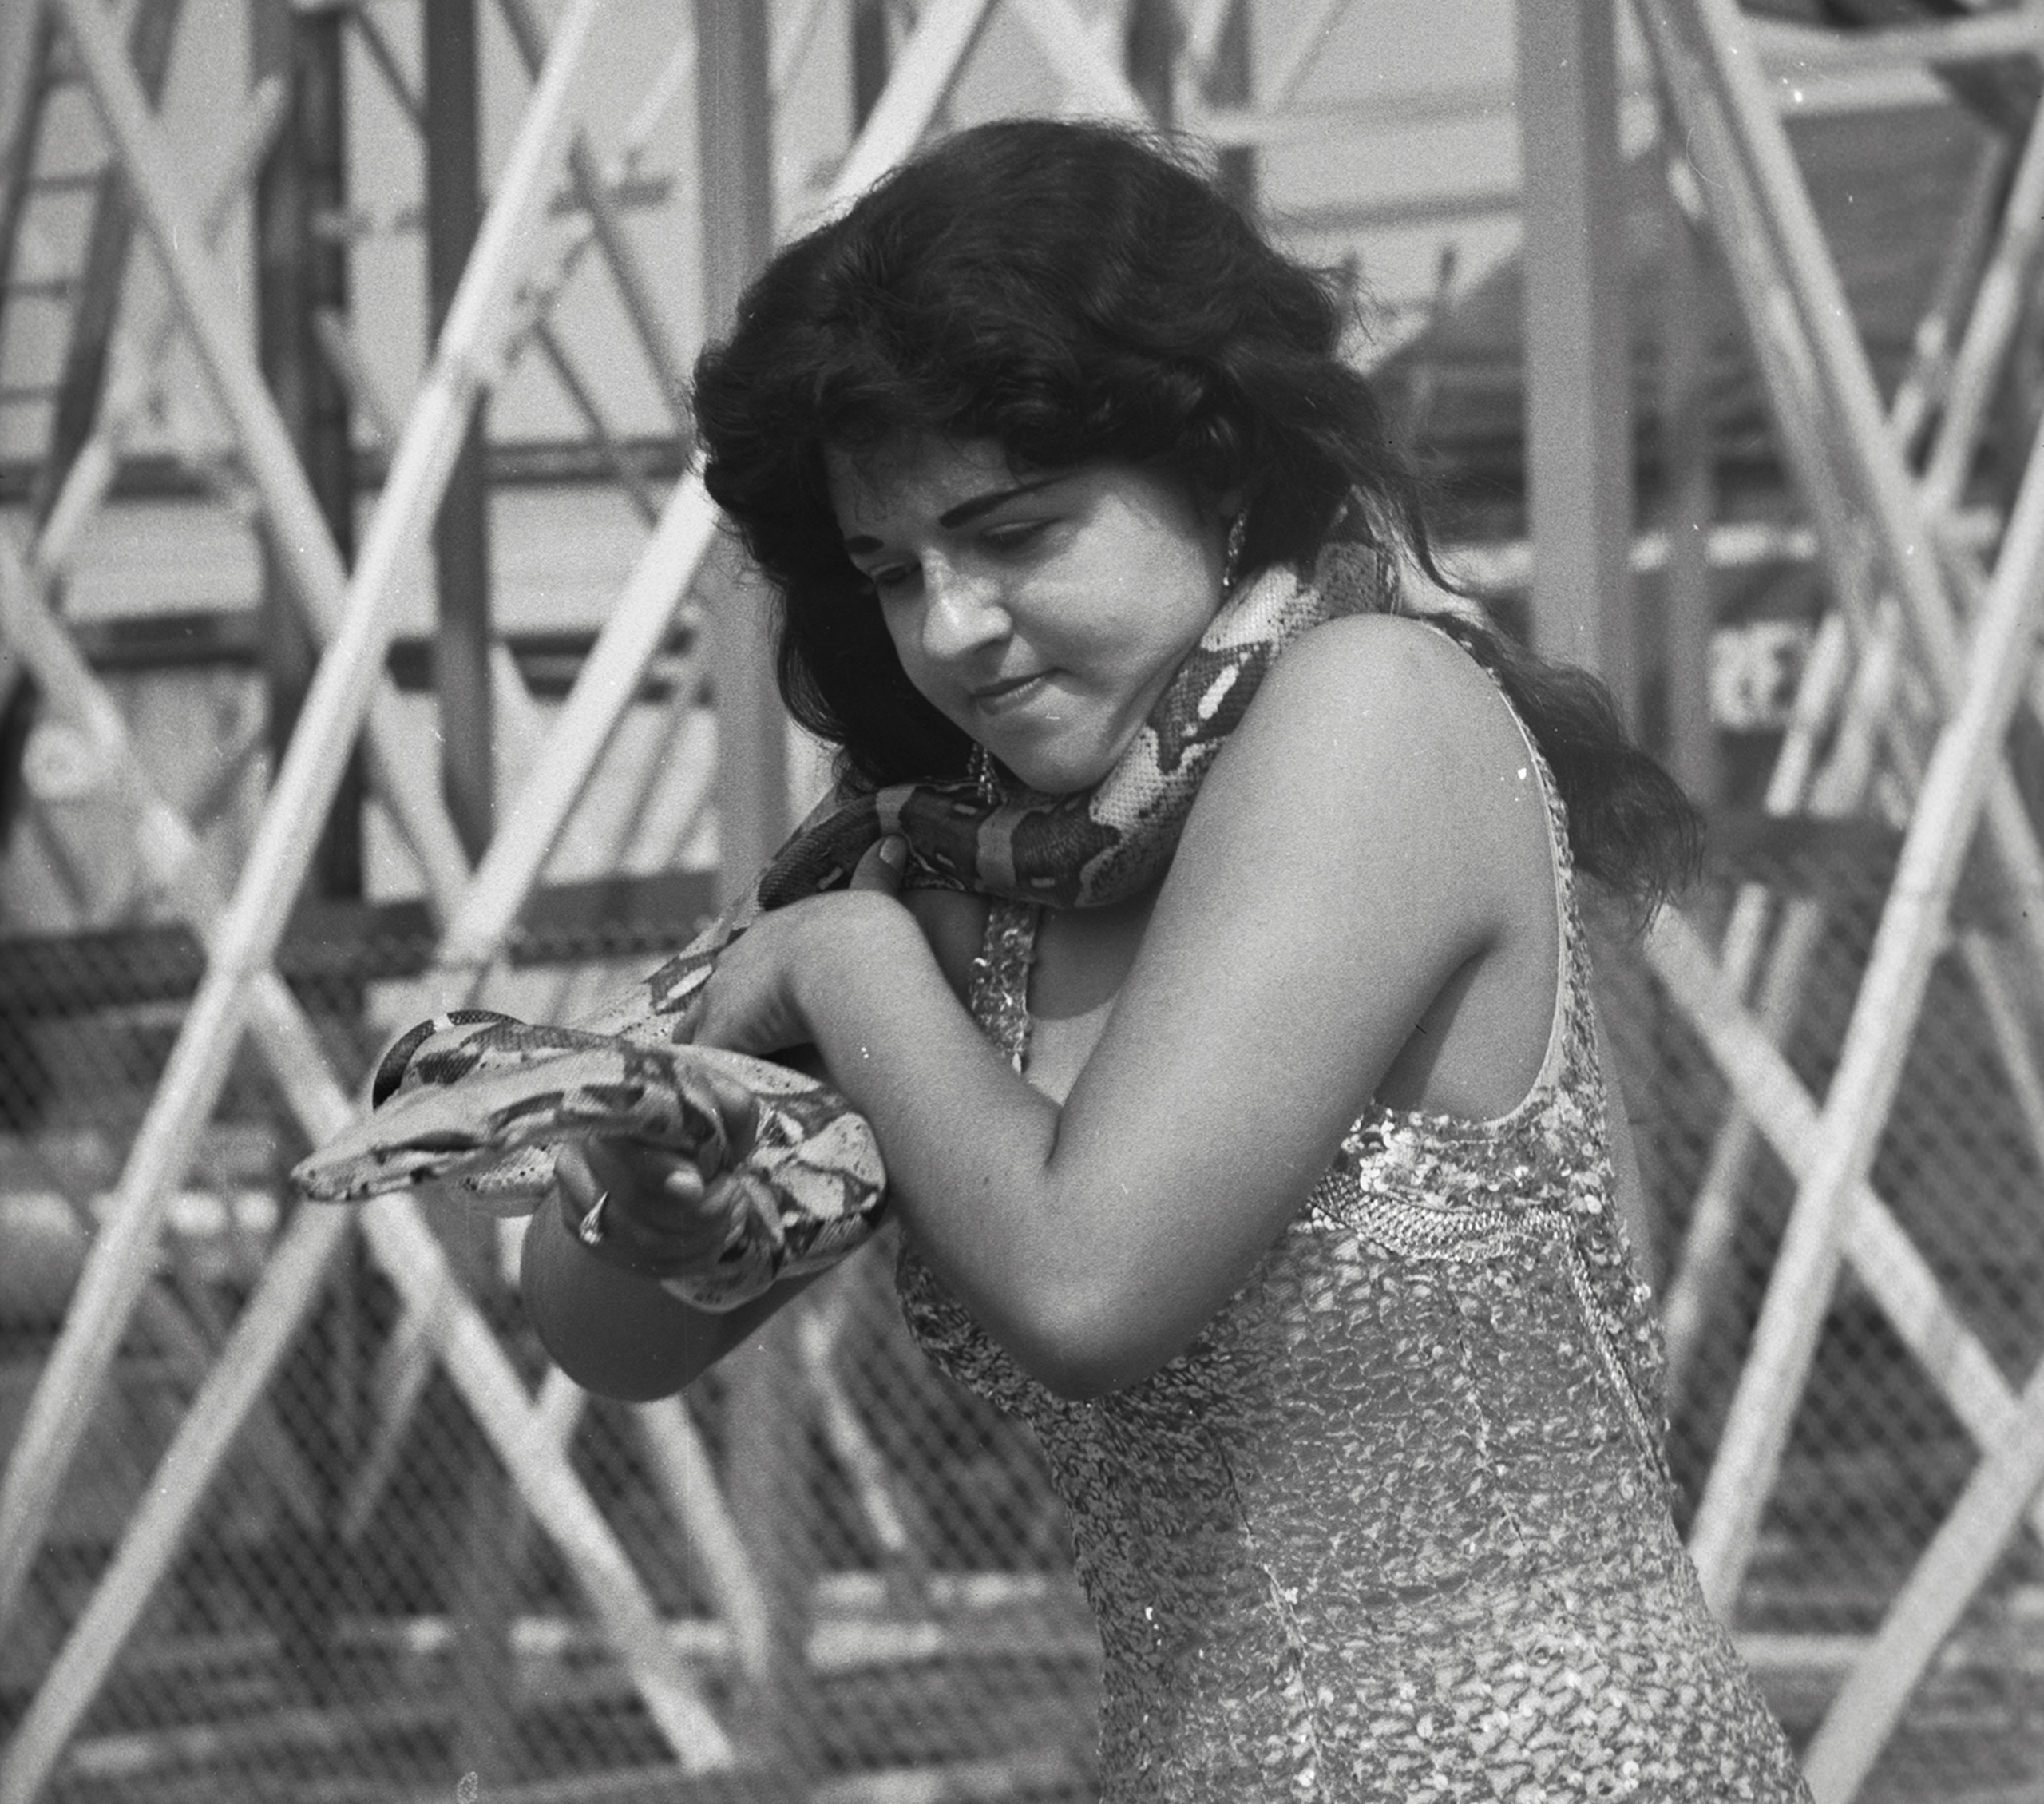 Snake Charmer, 1960. Canadian National Exhibition Archives, MG5-F346-I4. Courtesy of the CNEA